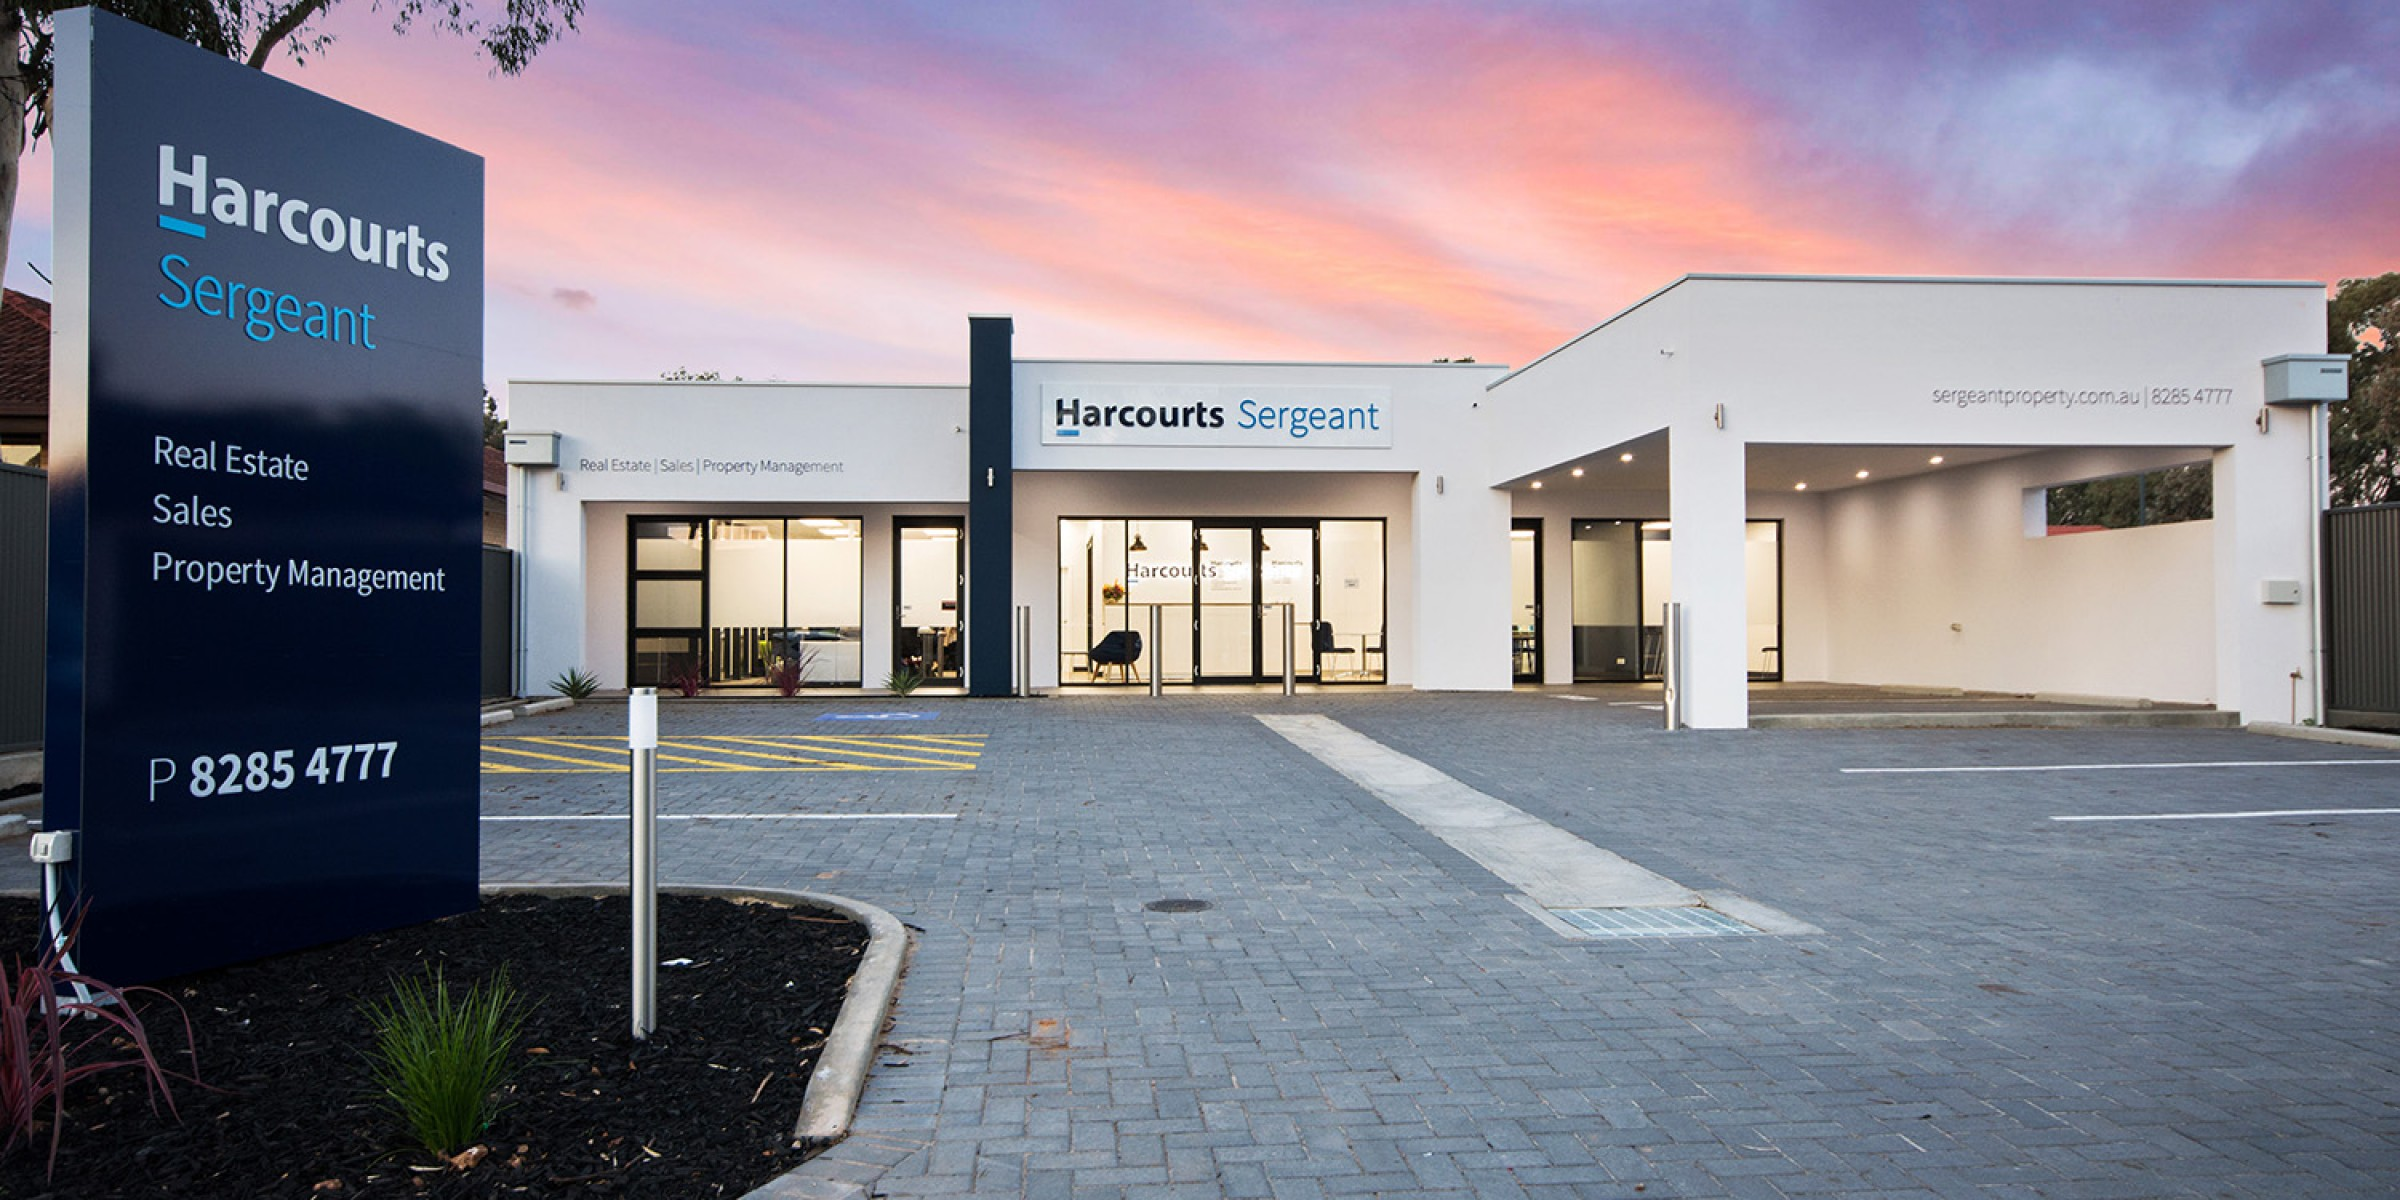 Harcourts Sargeants Office Facade Twilight